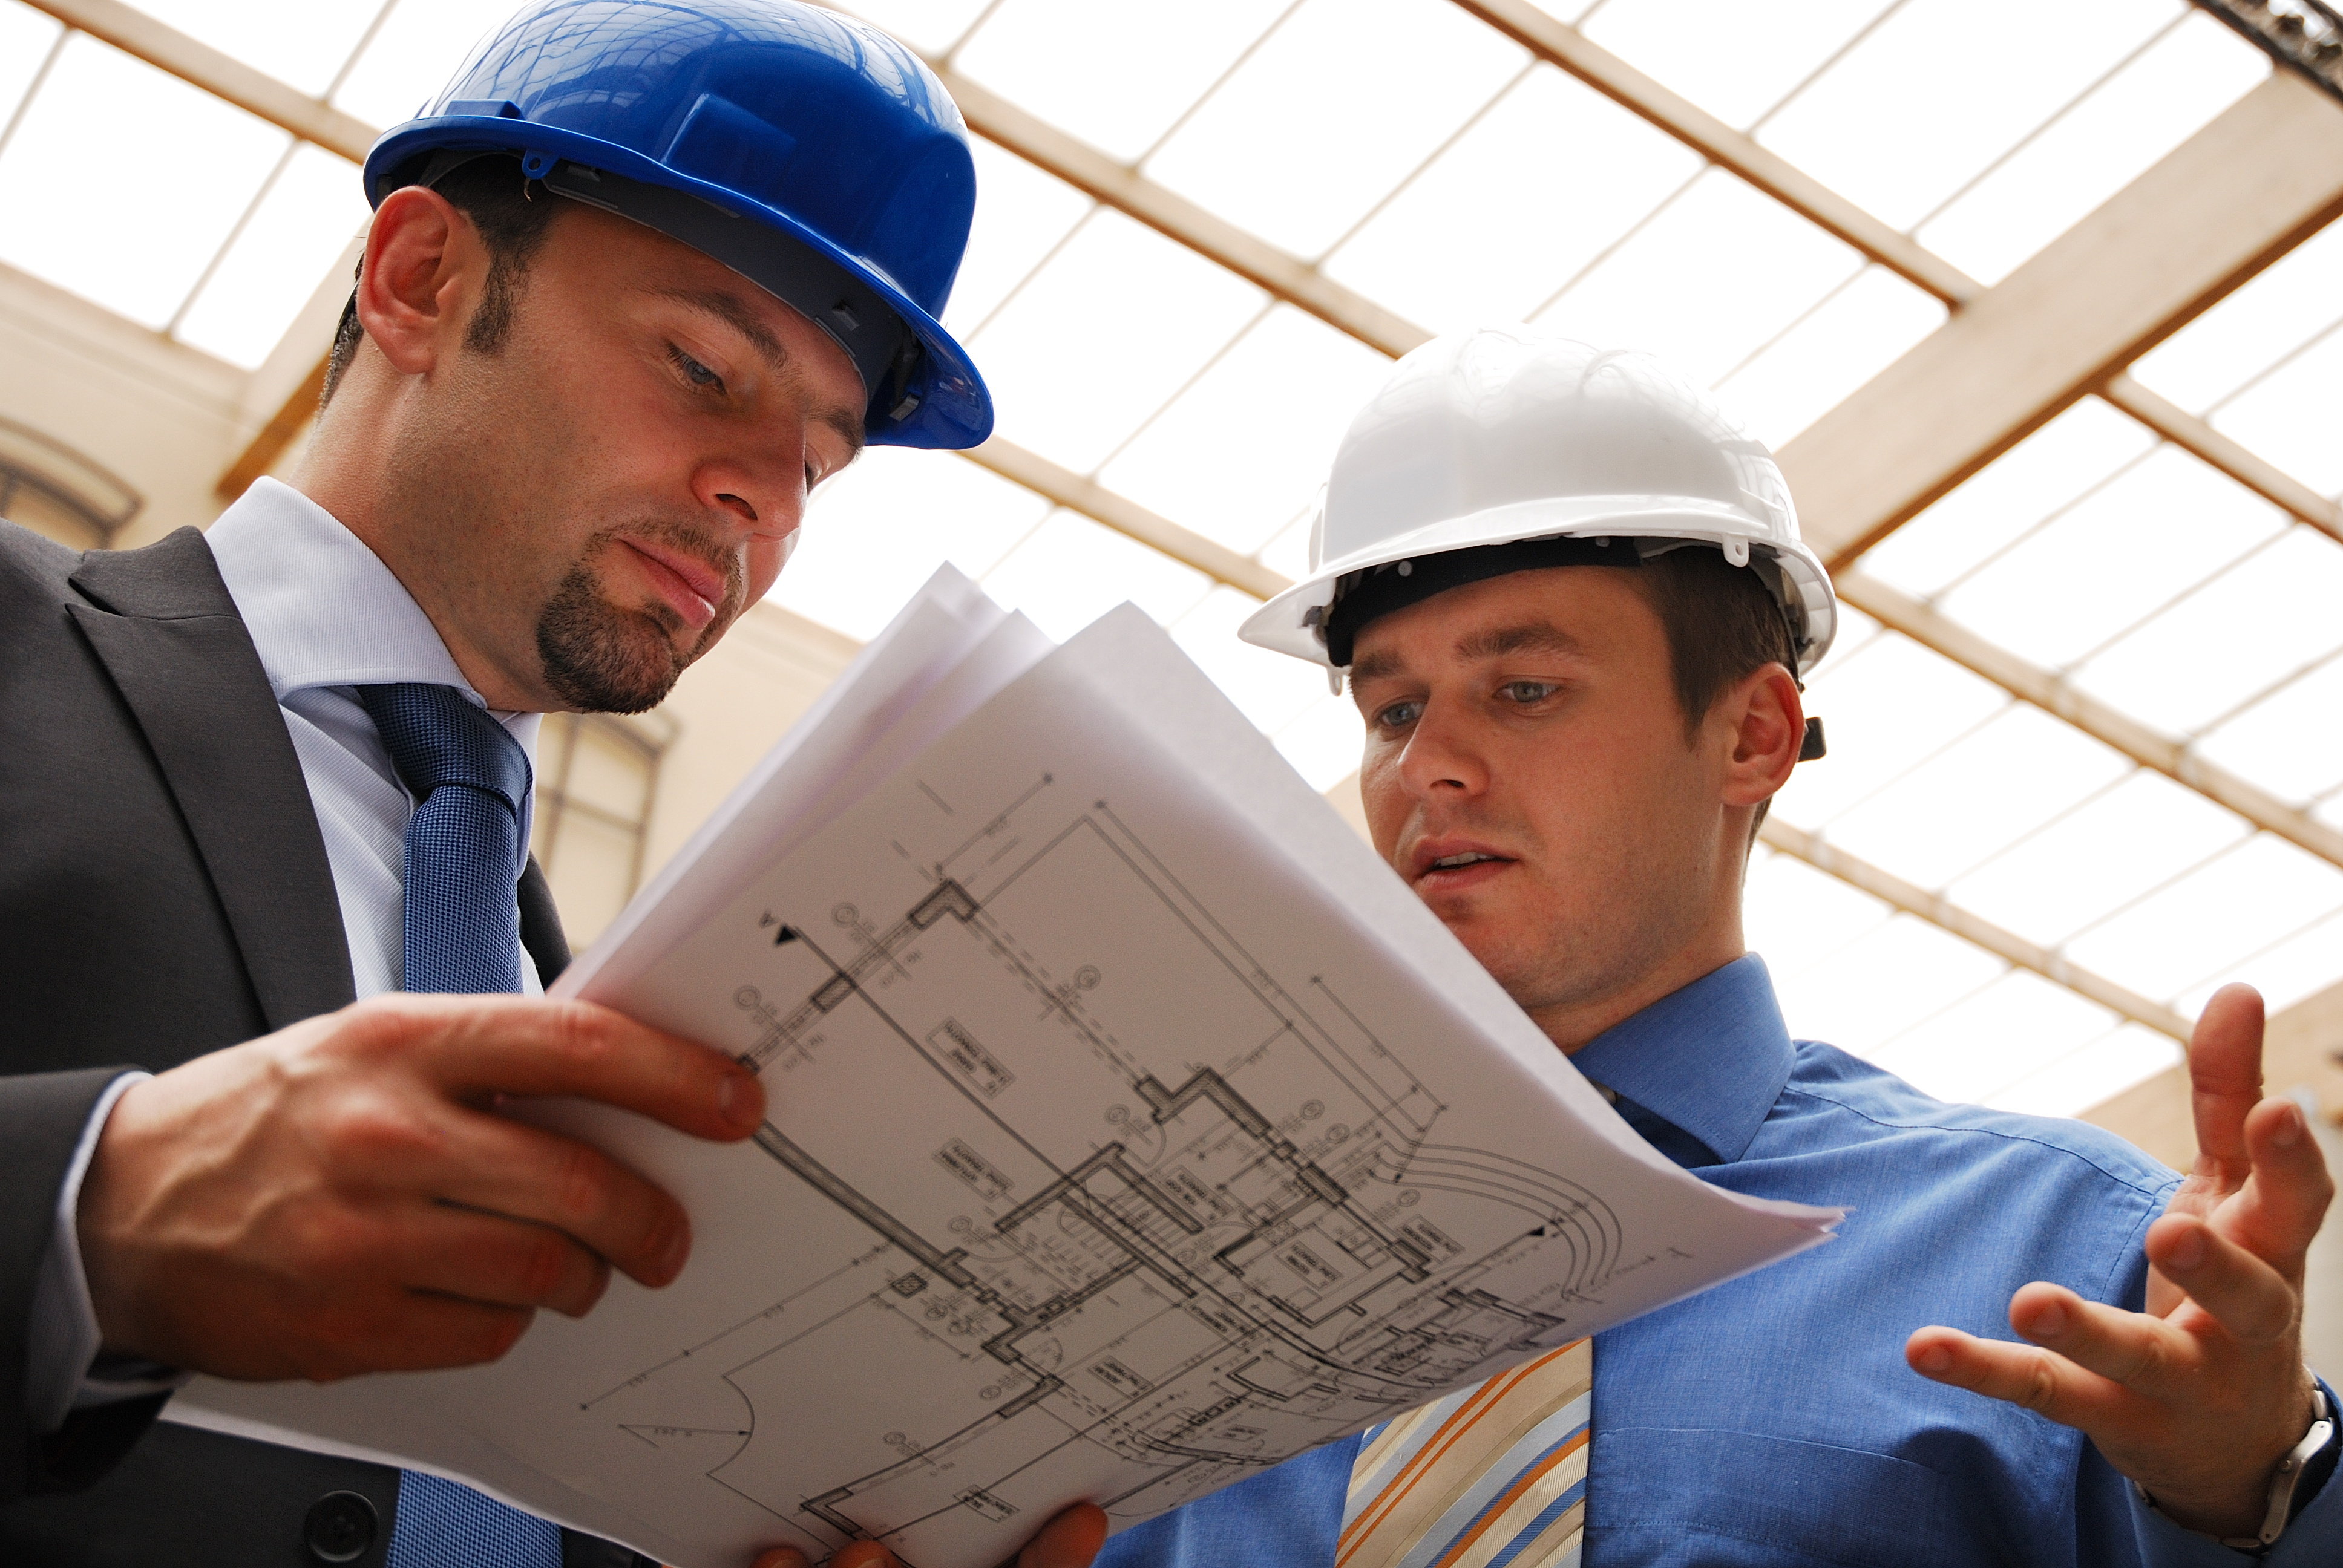 architect talking to investor over the blueprints